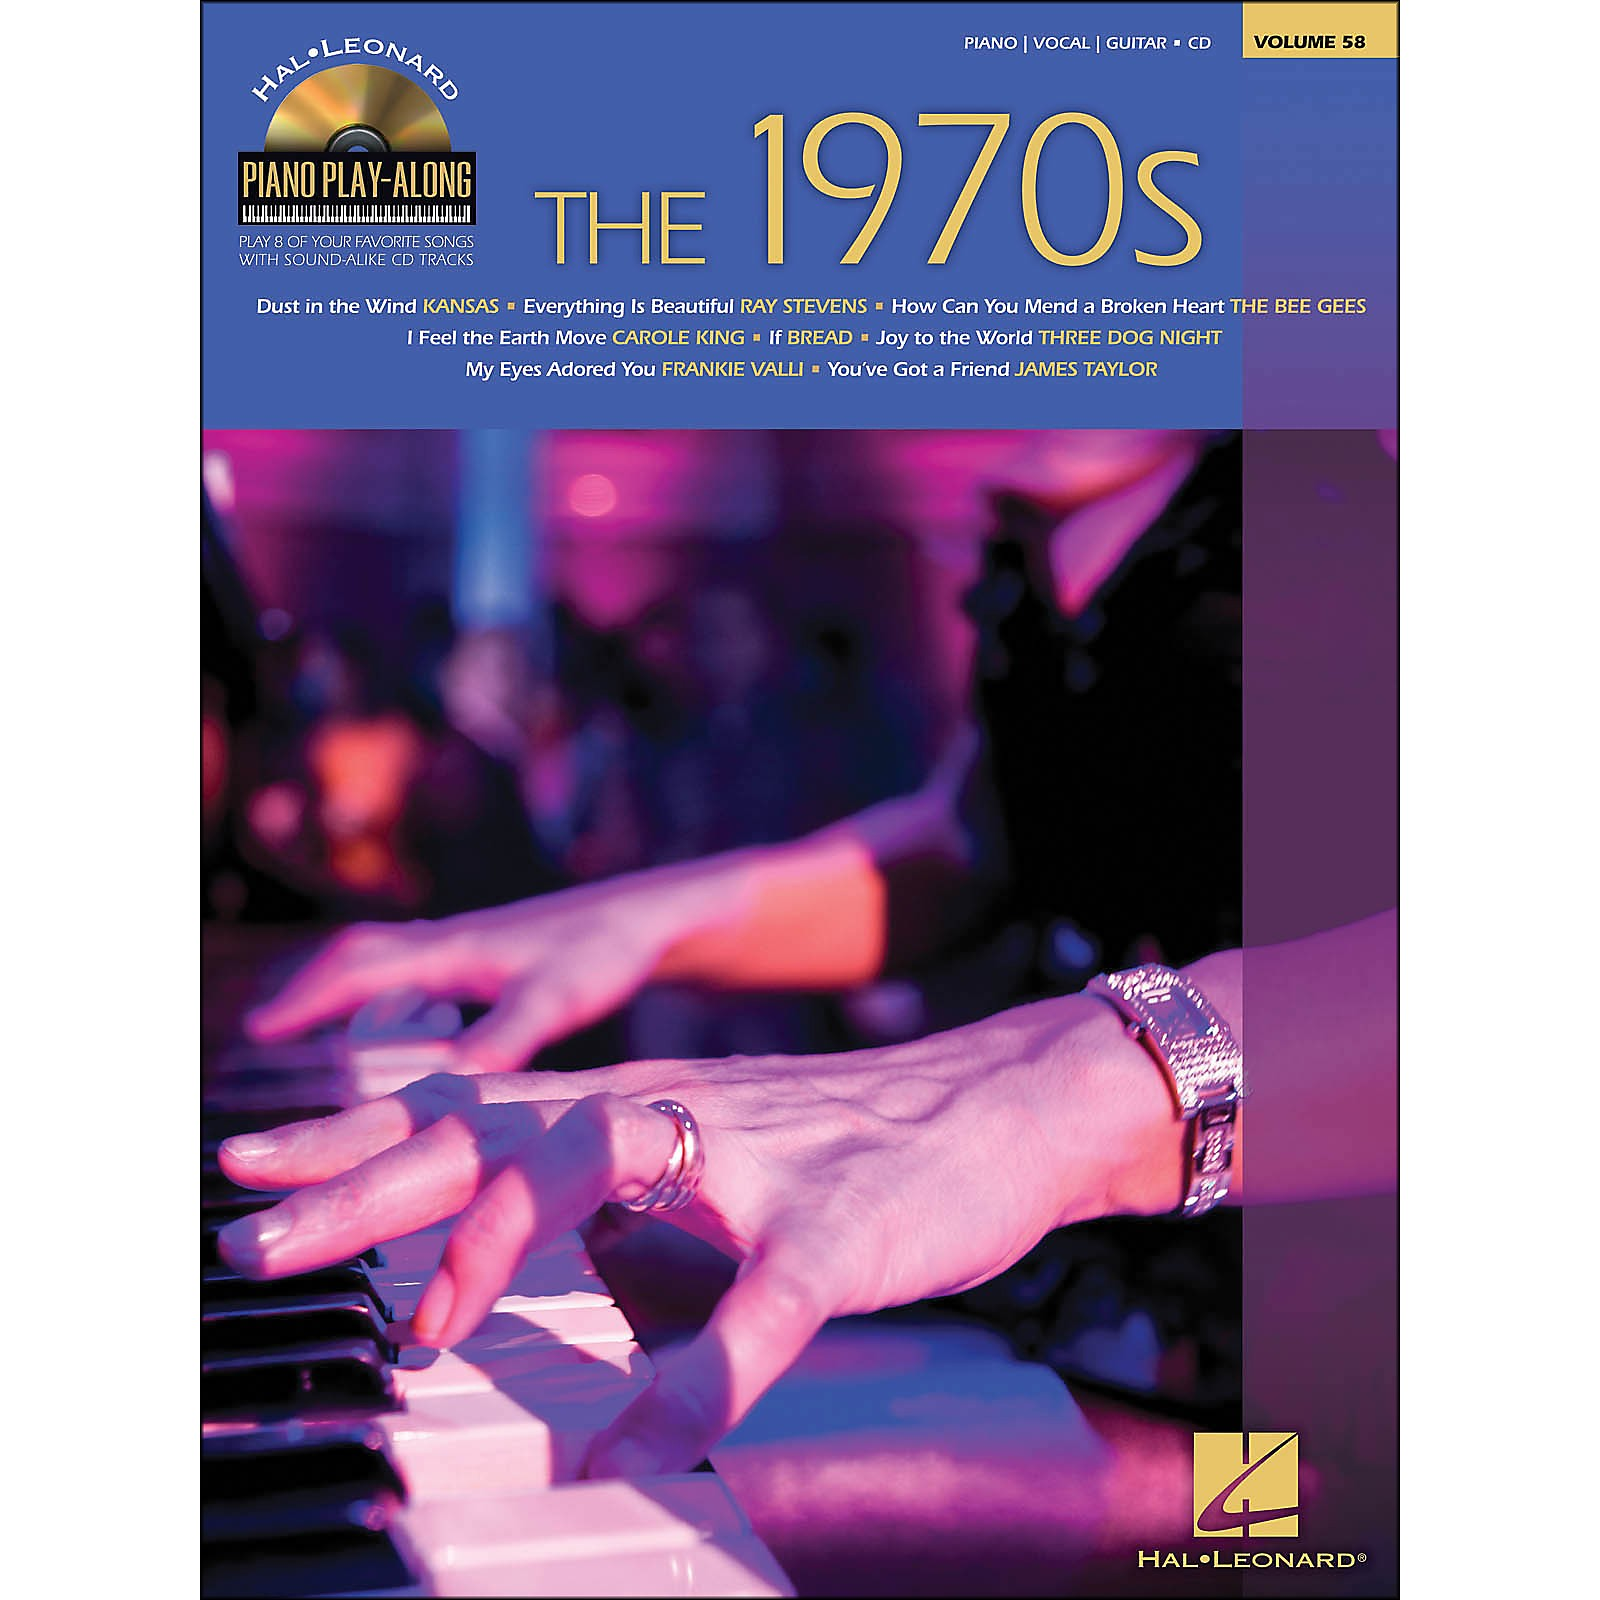 Hal Leonard The 1970s - Piano Play-Along Volume 58 (CD/Pkg) arranged for piano, vocal, and guitar (P/V/G)